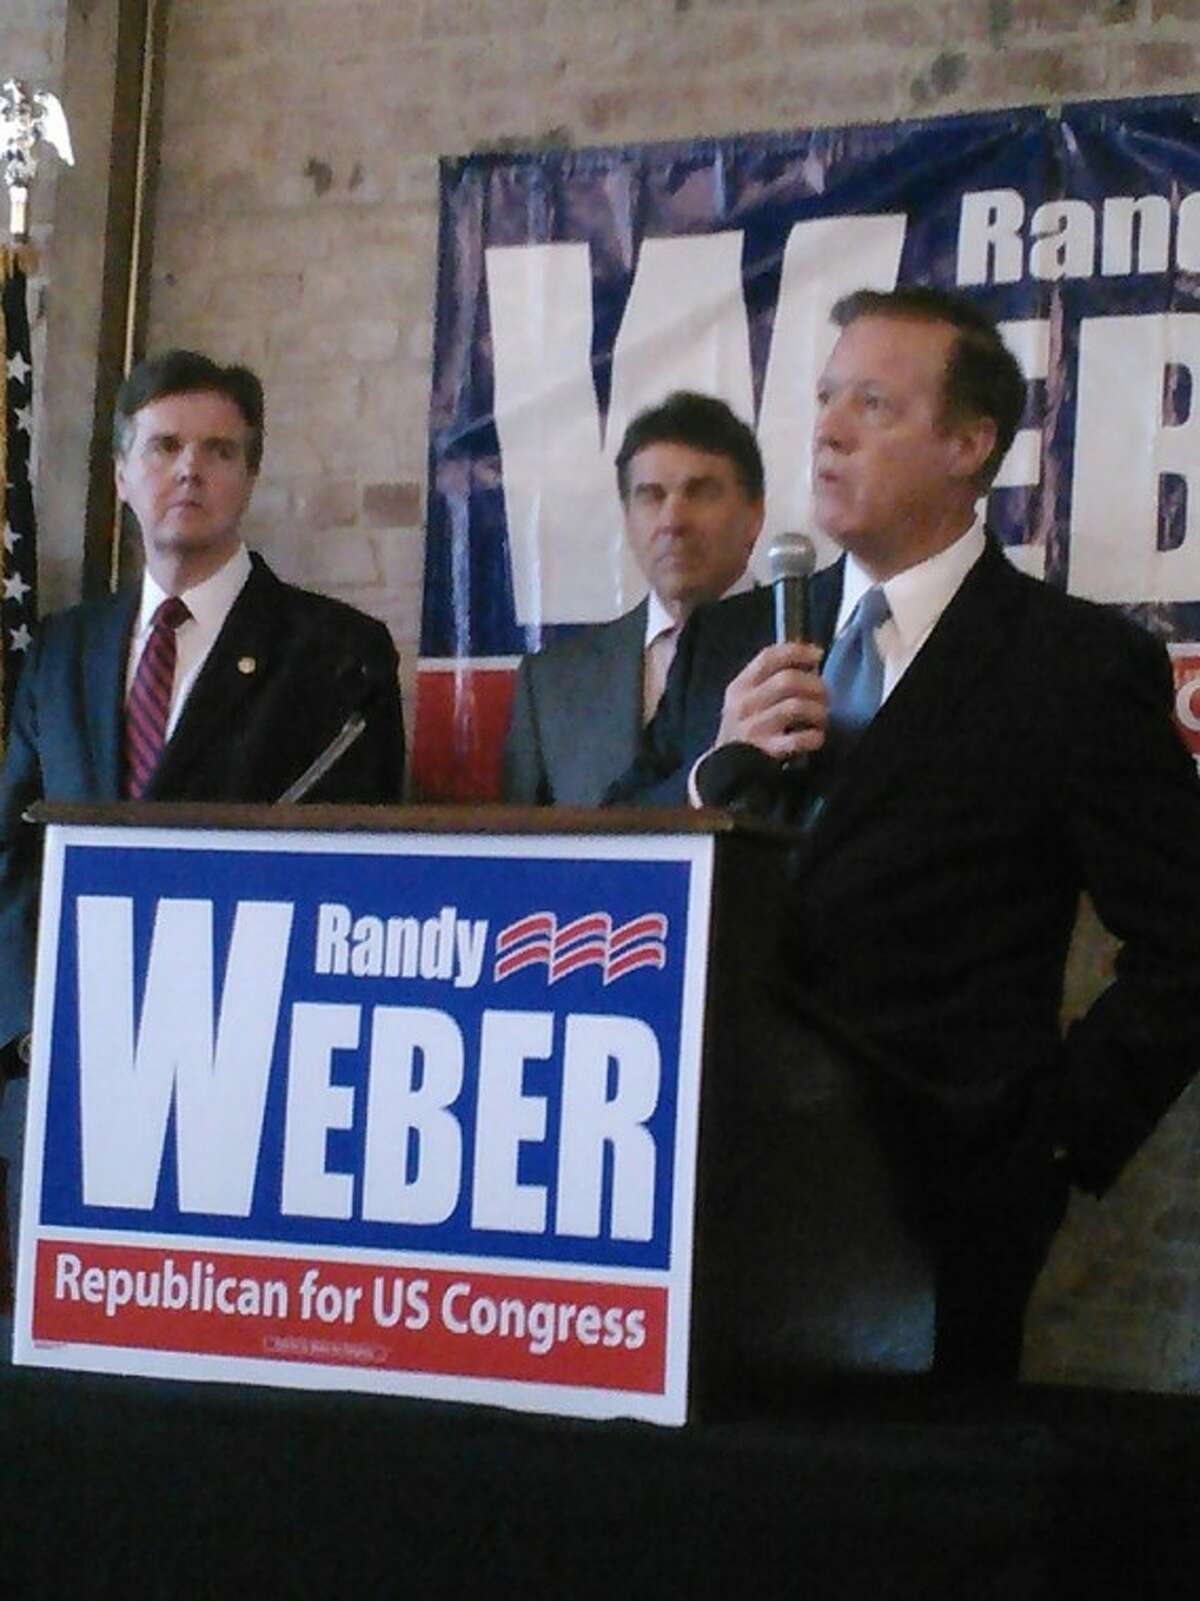 """A campaign rally was held in League City for congressional candidate Randy Weber. """"Let's show Democrats the Texas model where we lead the nation in job creation,"""" Weber said. """"Let's show them the Texas model where we lead the nation with the number one state economy, where we lead the nation in protecting liberty and states' rights and where we lead the nation in the fight to repeal Obama-care."""" Pictured from left: State Senator Dan Patrick, Gov. Rick Perry, Rep. Weber."""